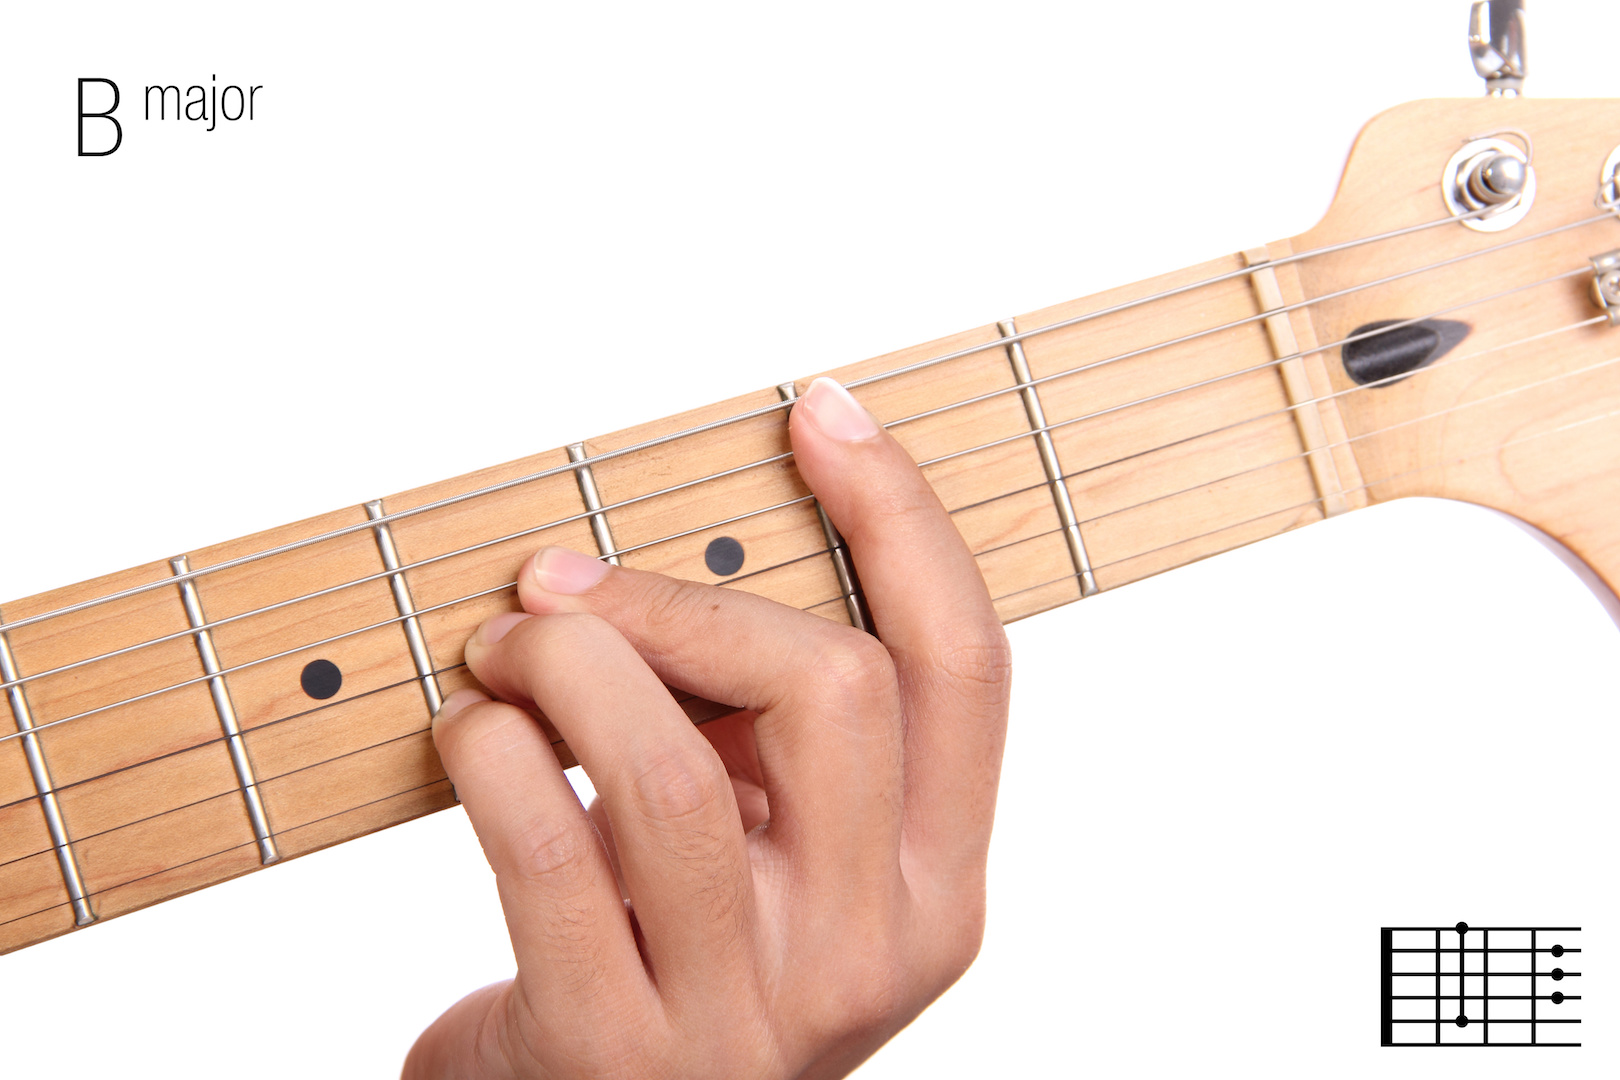 B Major Chord On Guitar Chord Shapes Major Scale Songs